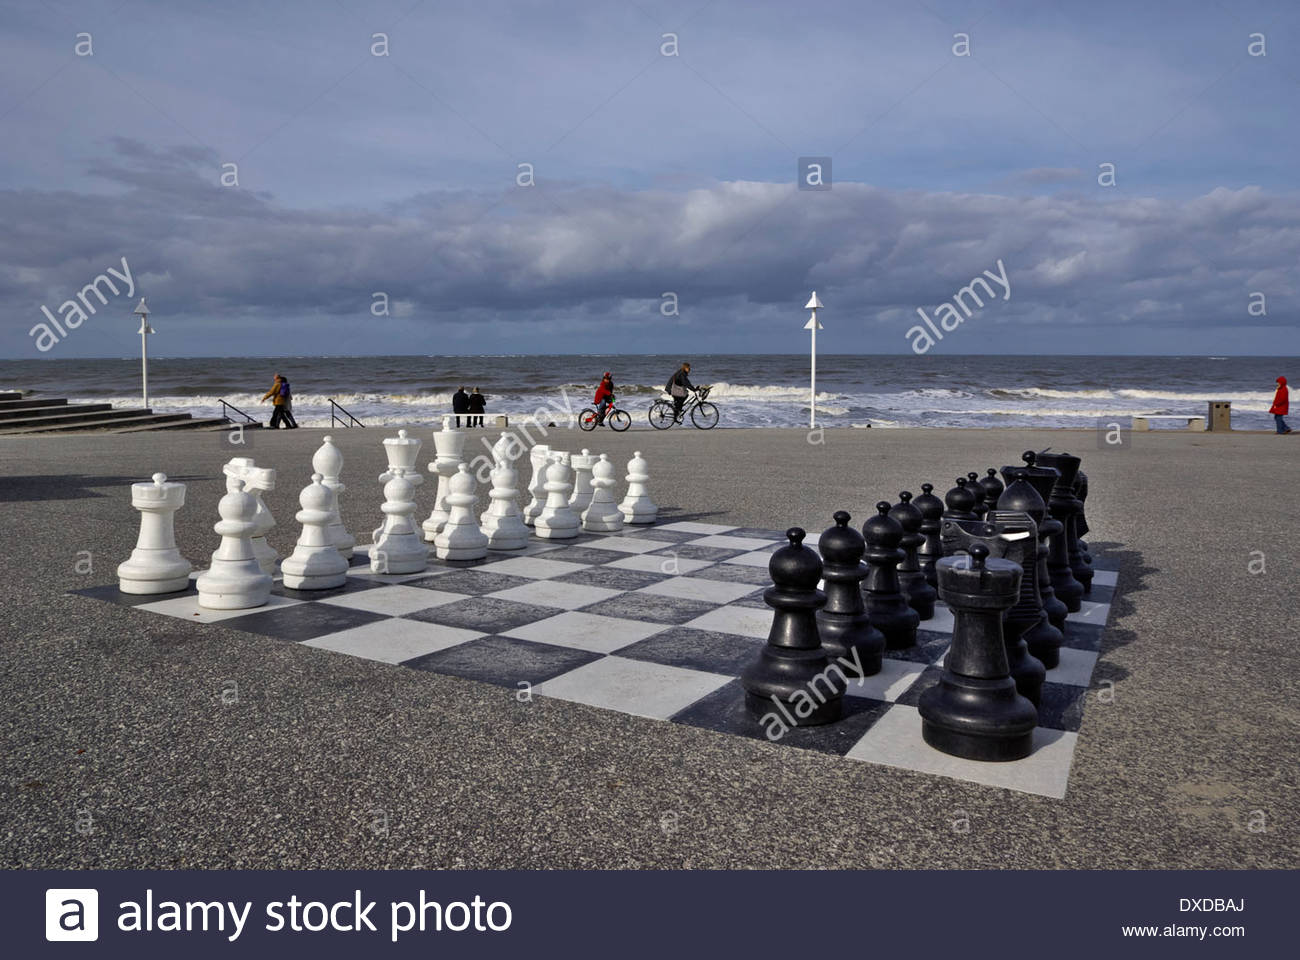 People sit, cycle and stroll by the seaside in Norderney, large chessboard in foreground. - Stock Image